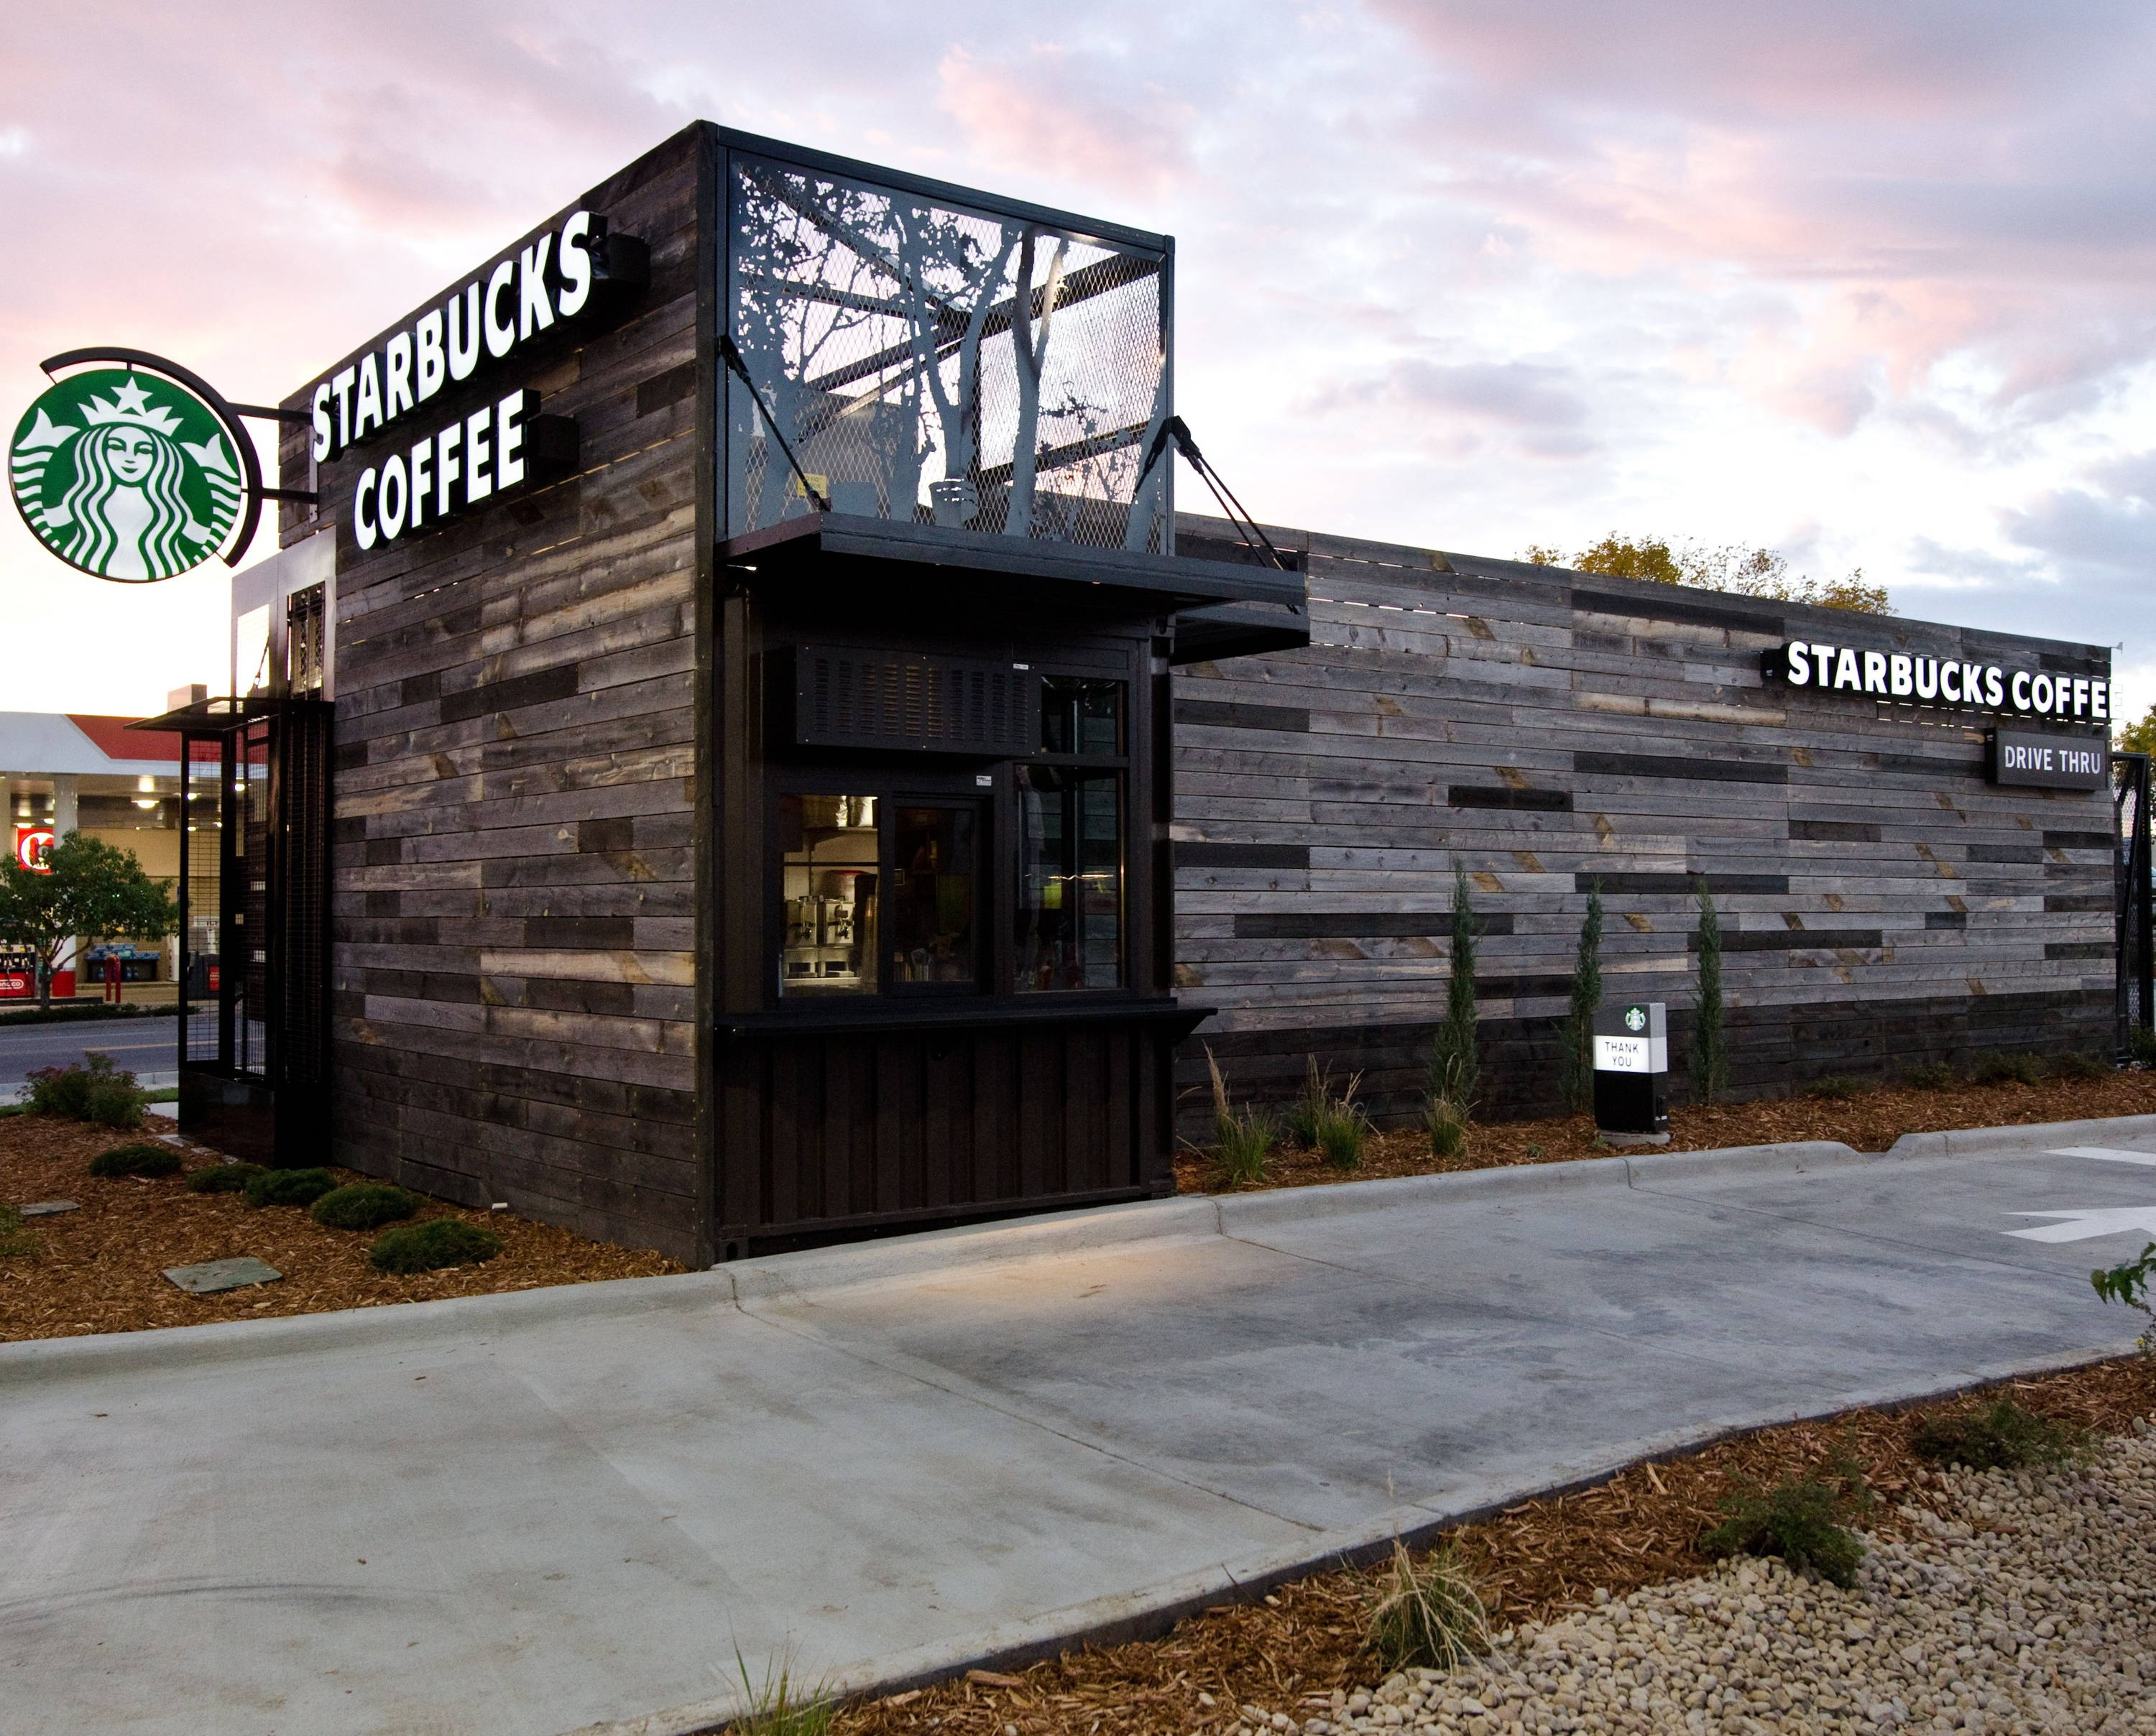 40 foot high cube shipping container Starbucks Drive Thru